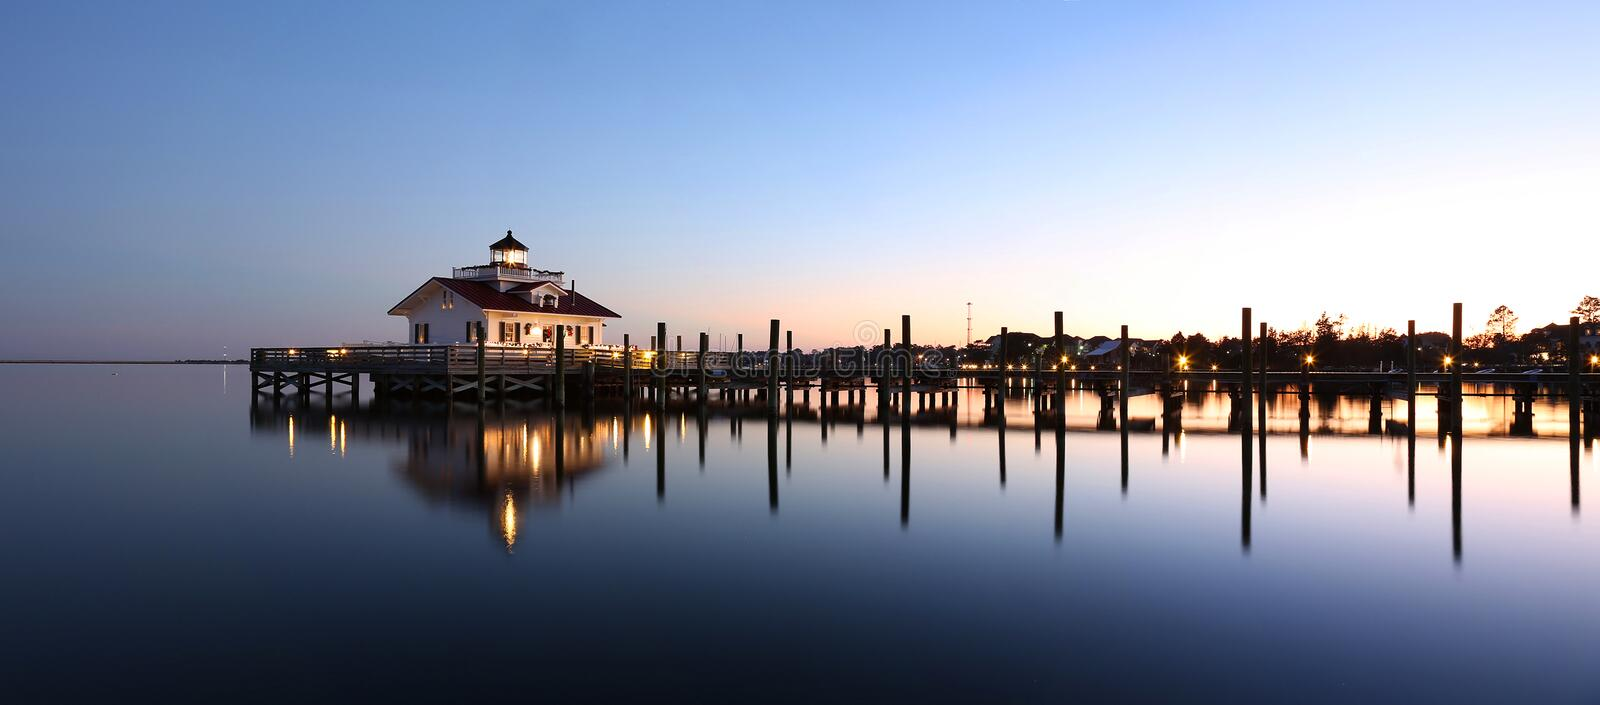 Lighthouse reflected in water at dusk. Roanoke Marshes Lighthouse Manteo NC Outer Banks North Carolina dock in Albemarle Sound stock photo